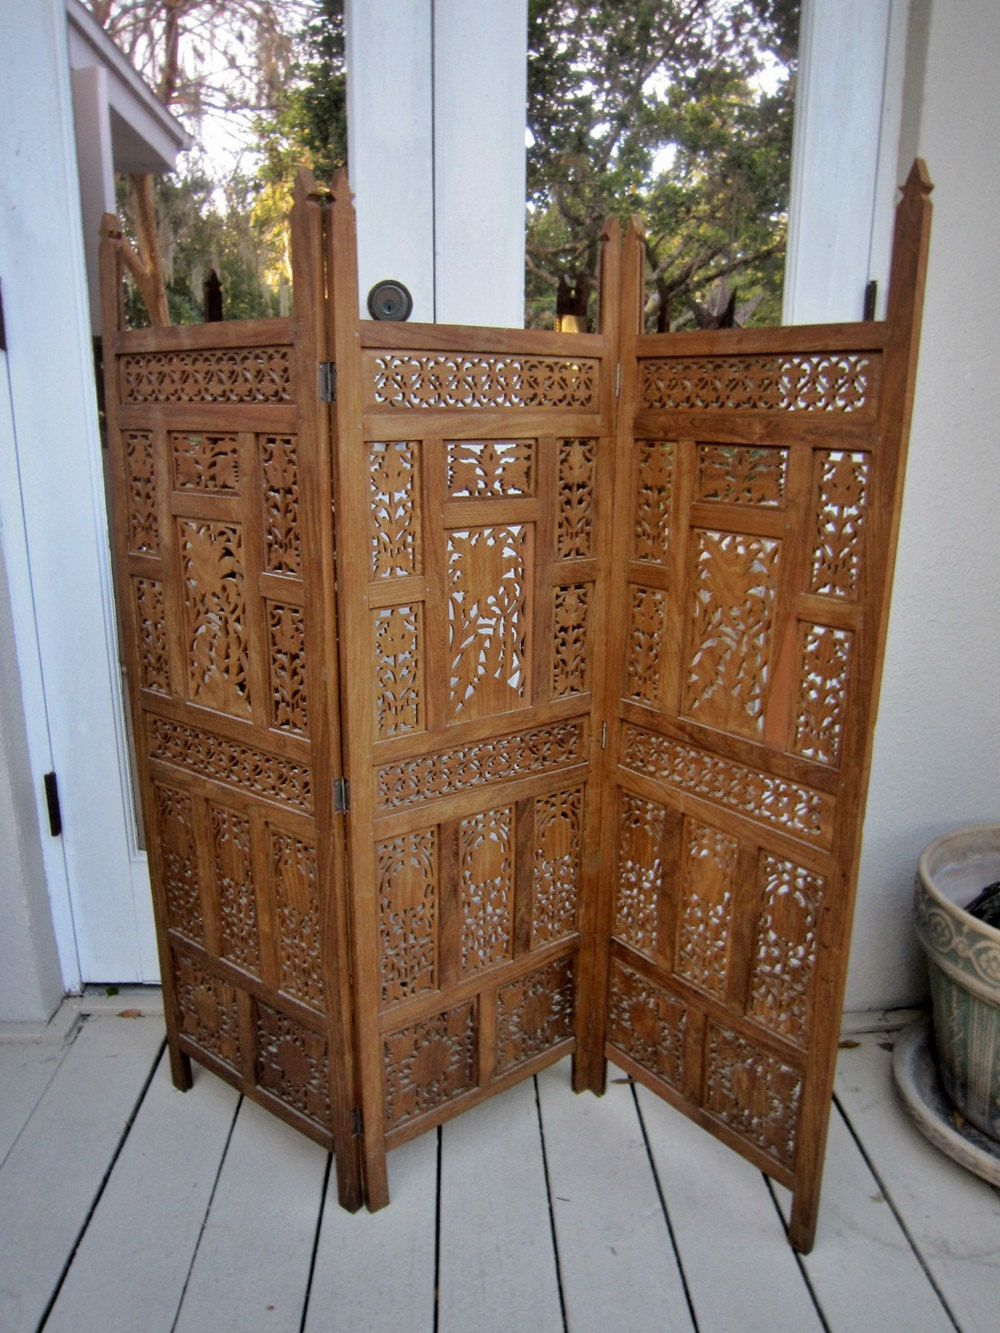 Vintage Wood Folding Screen Indian 70 S By Floridafound On Etsy 125 00